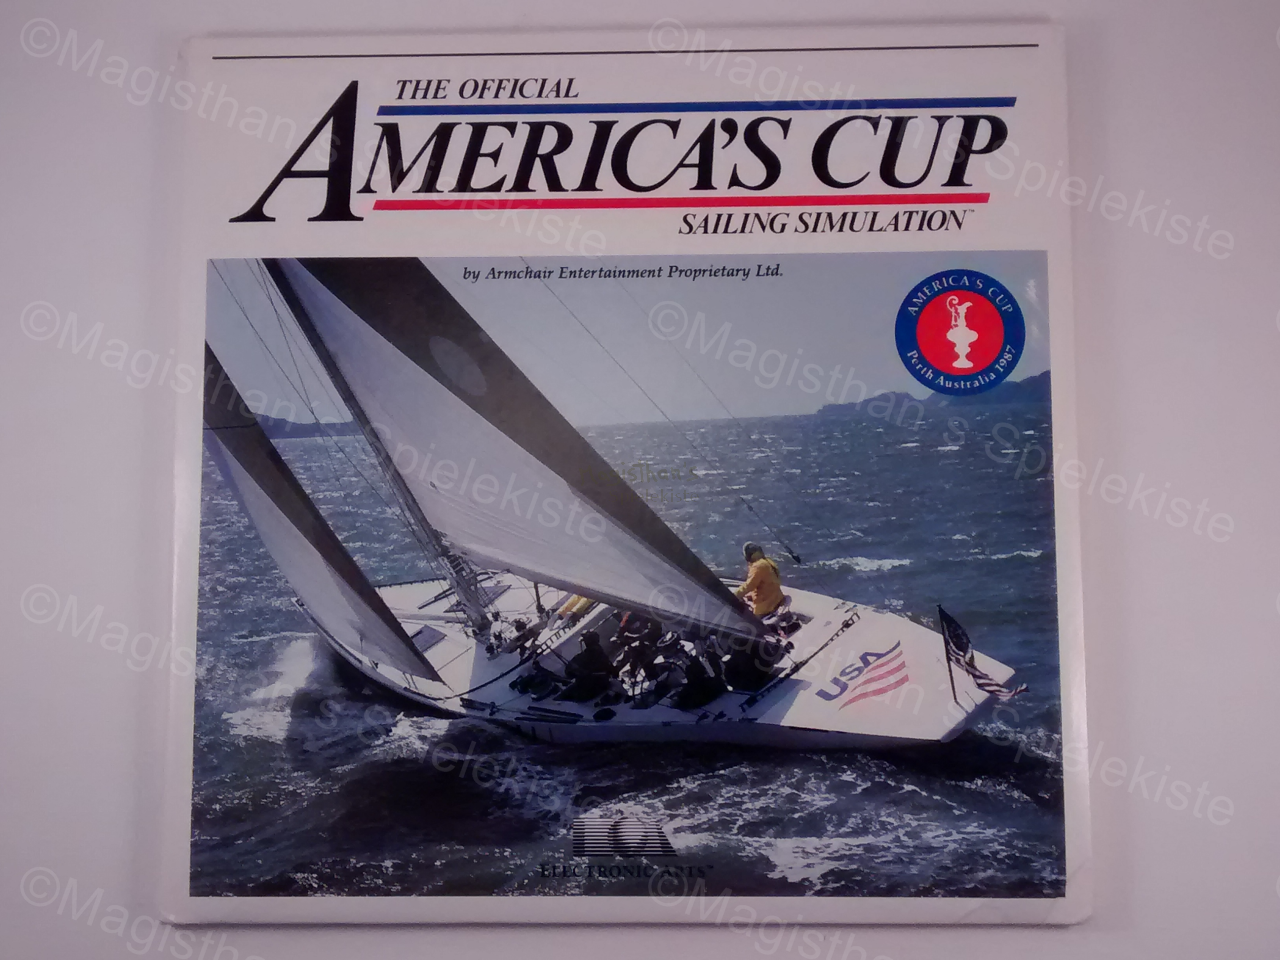 AmericasCup1.png